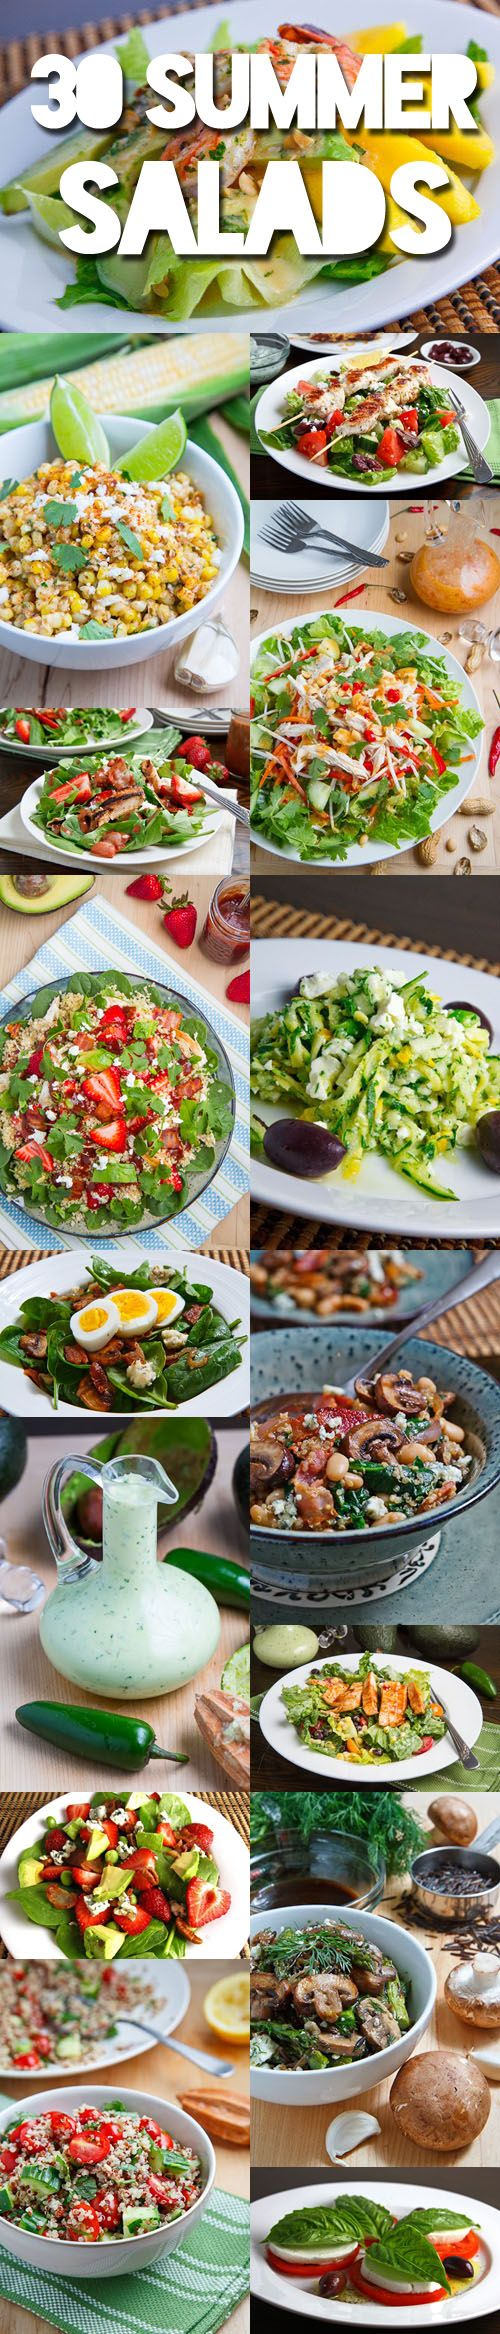 fashion and jewelry 30 Summer Salads